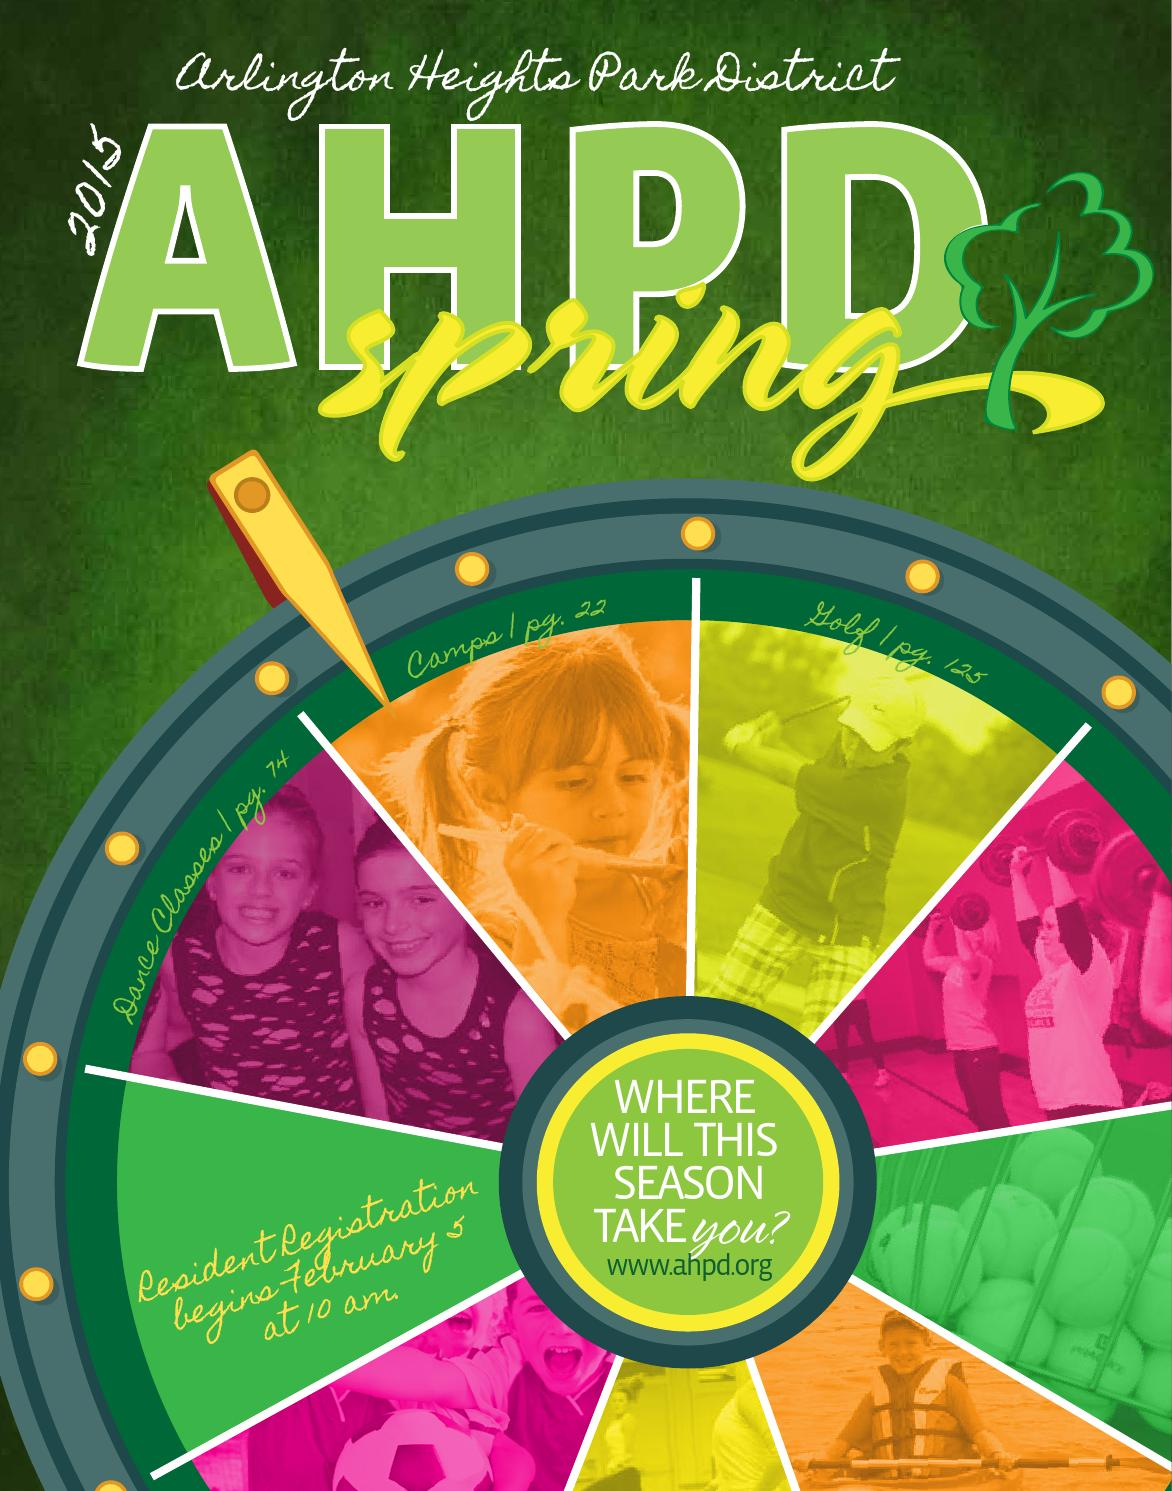 Arlington Heights Park District's Spring 2015 Interactive